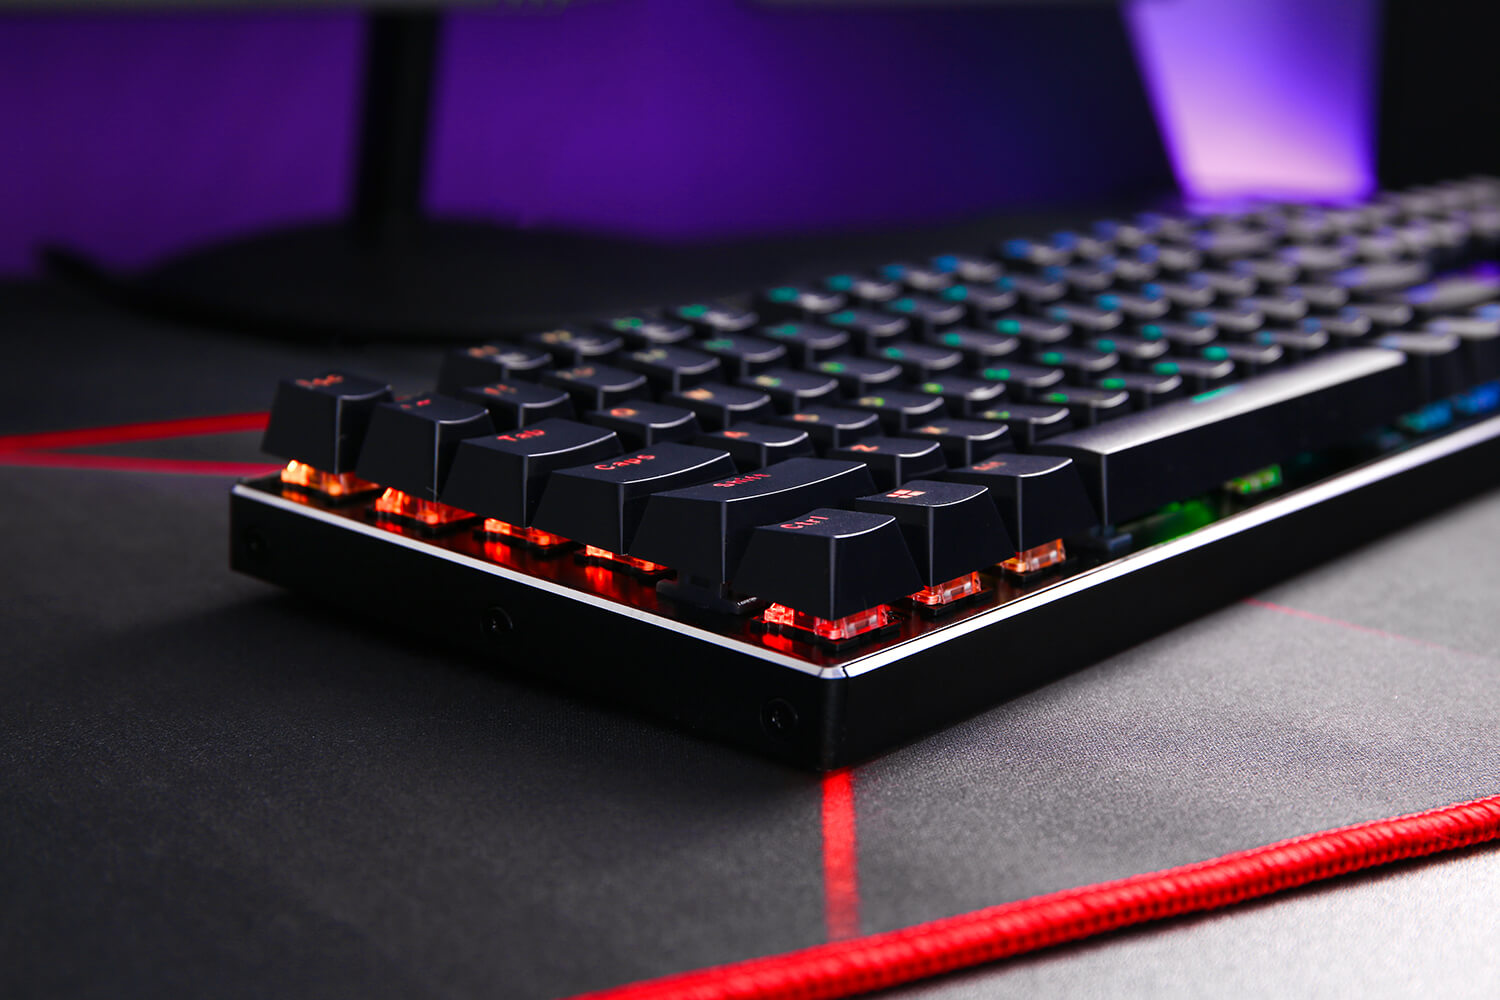 redragon k556 mechanical keyboard